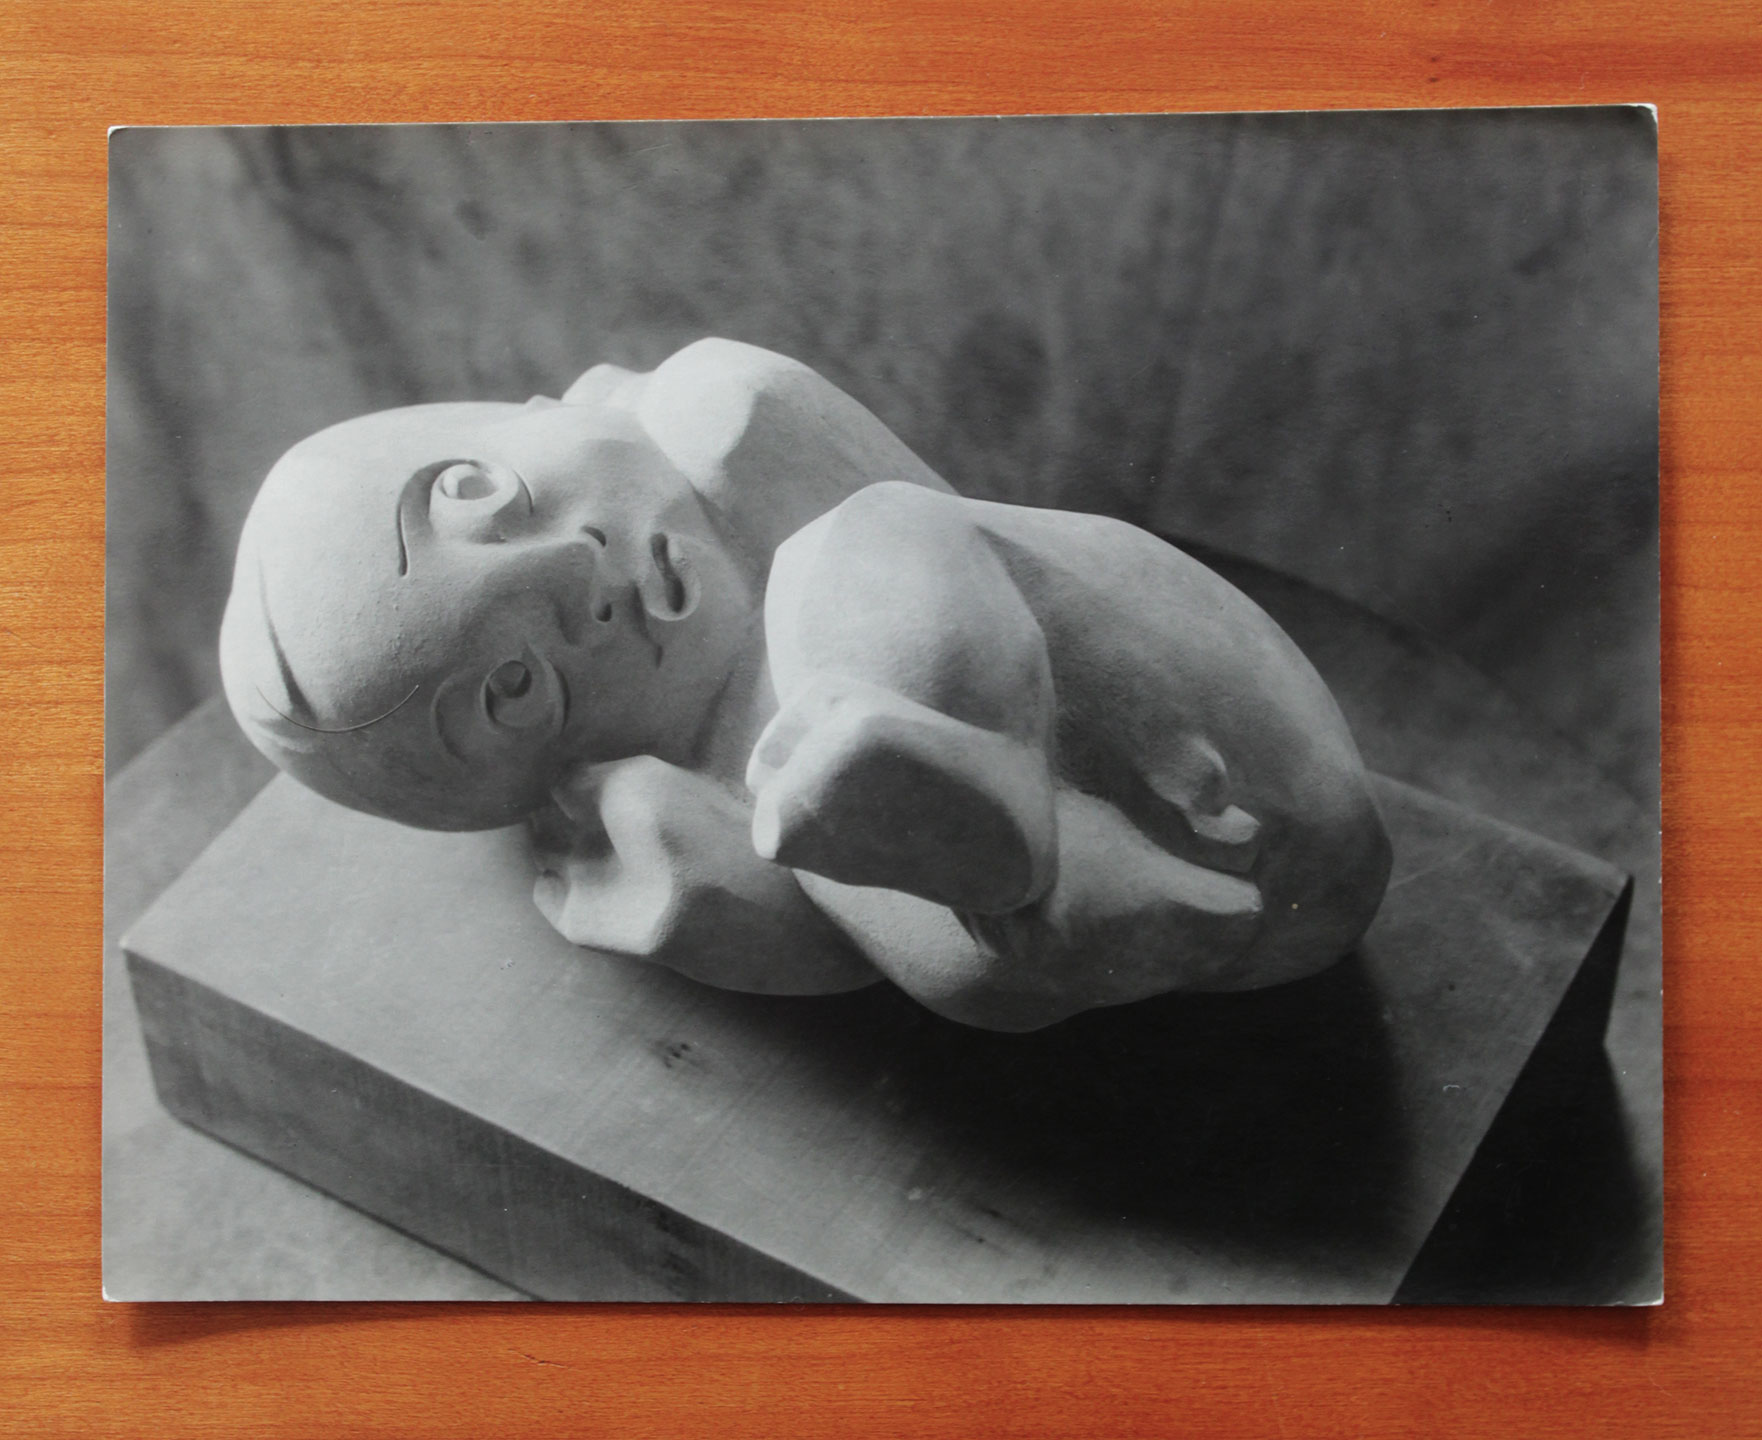 Gertrude Hermes, vintage photograph of 'Baby' (1932)